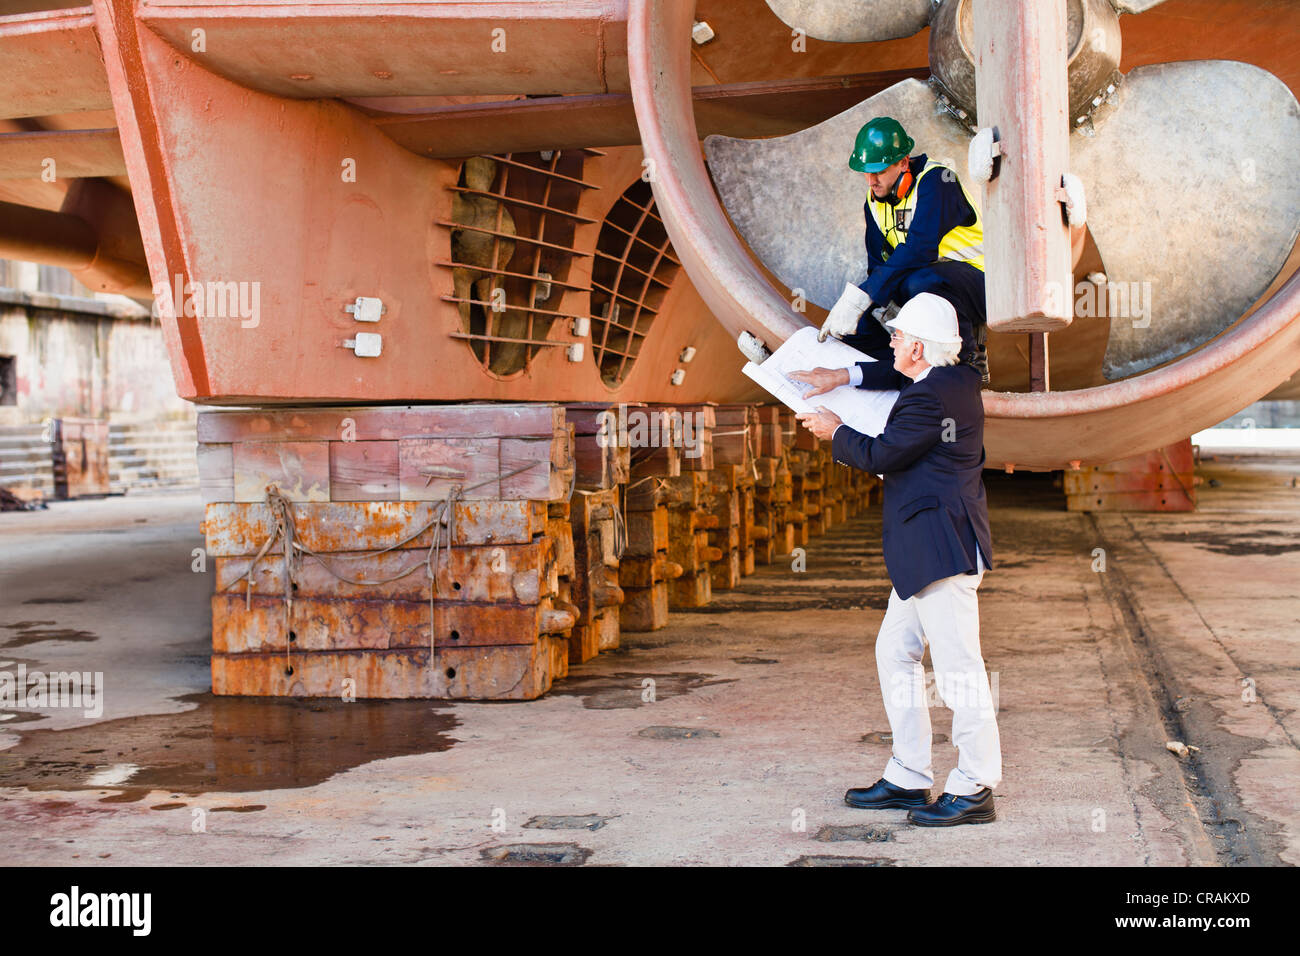 Workers talking in propeller on dry dock Stock Photo